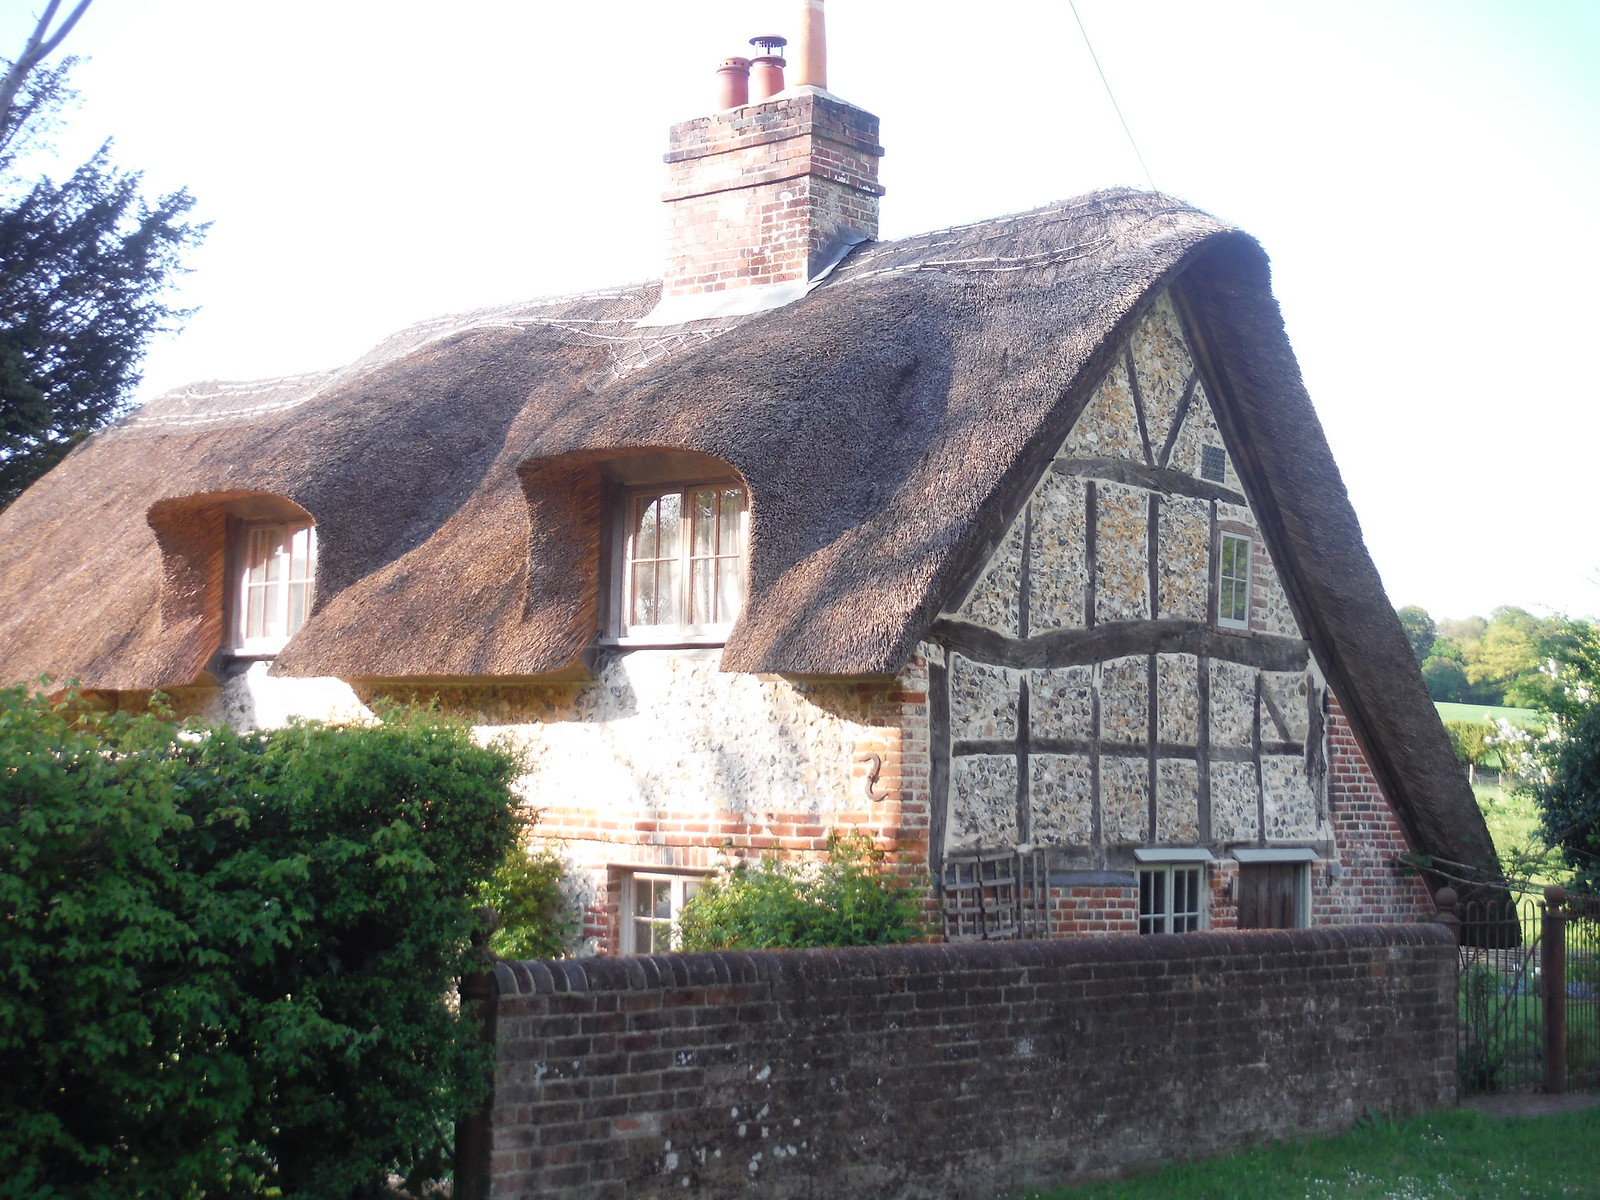 Flint-and-Brick Thatched Cottage, near South Holt Farm SWC Walk Rowlands Castle Circular